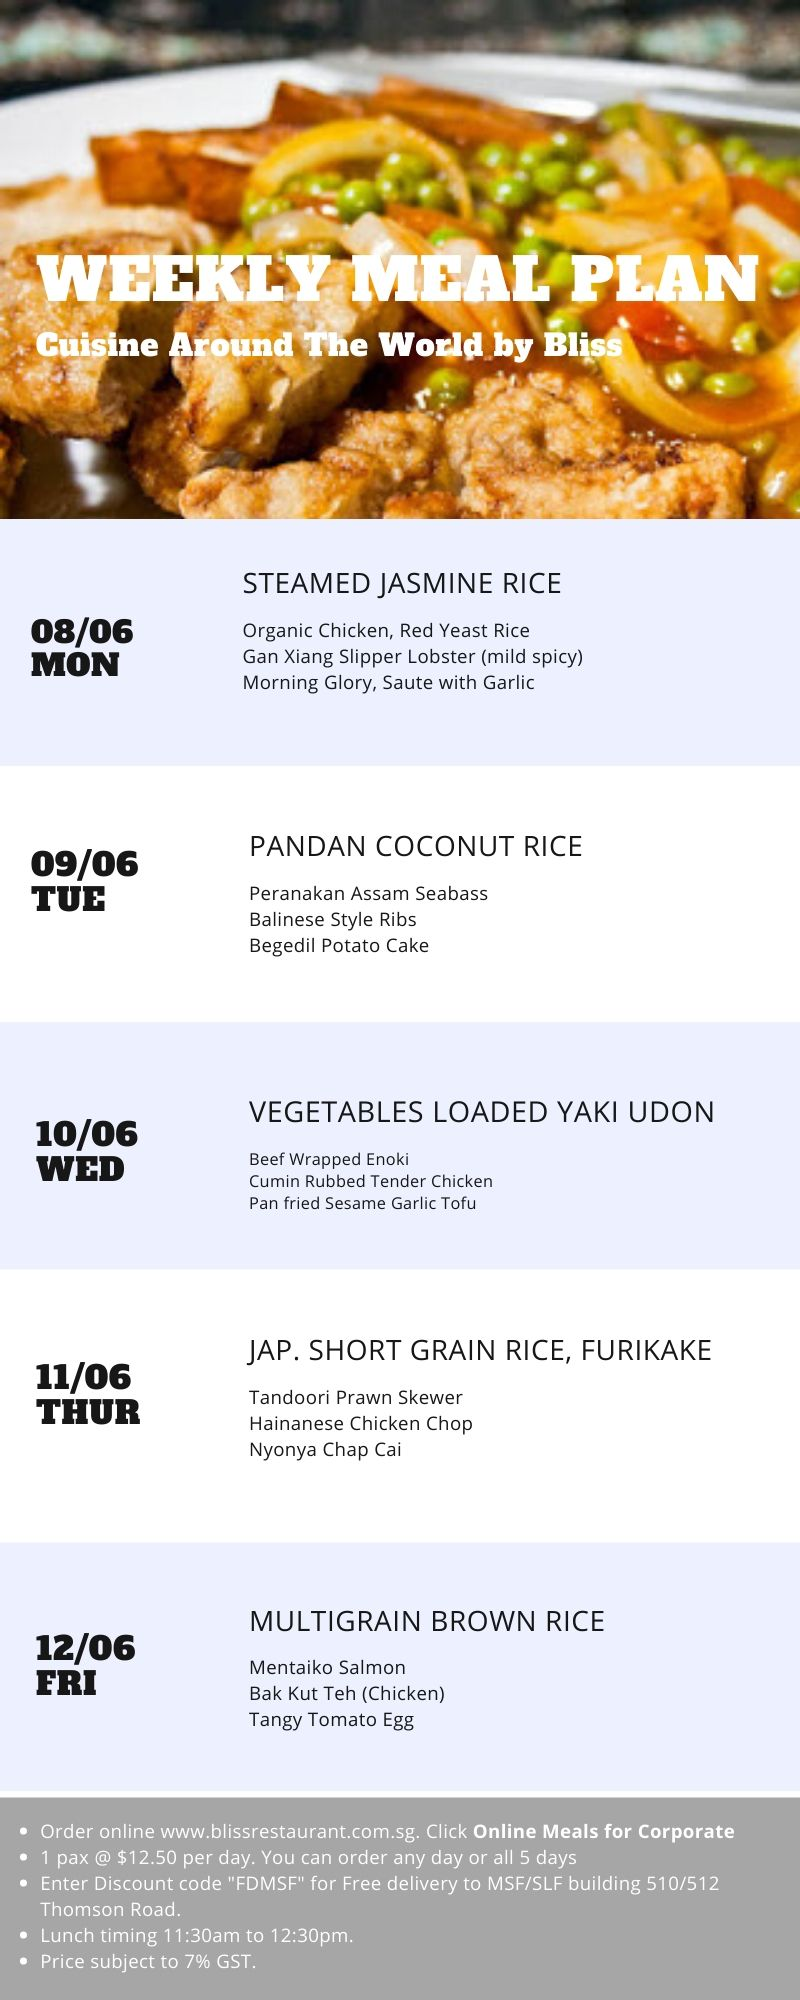 Weekly Meal Plan - $12.50 per day (MSF&P) - 8 to 12 June